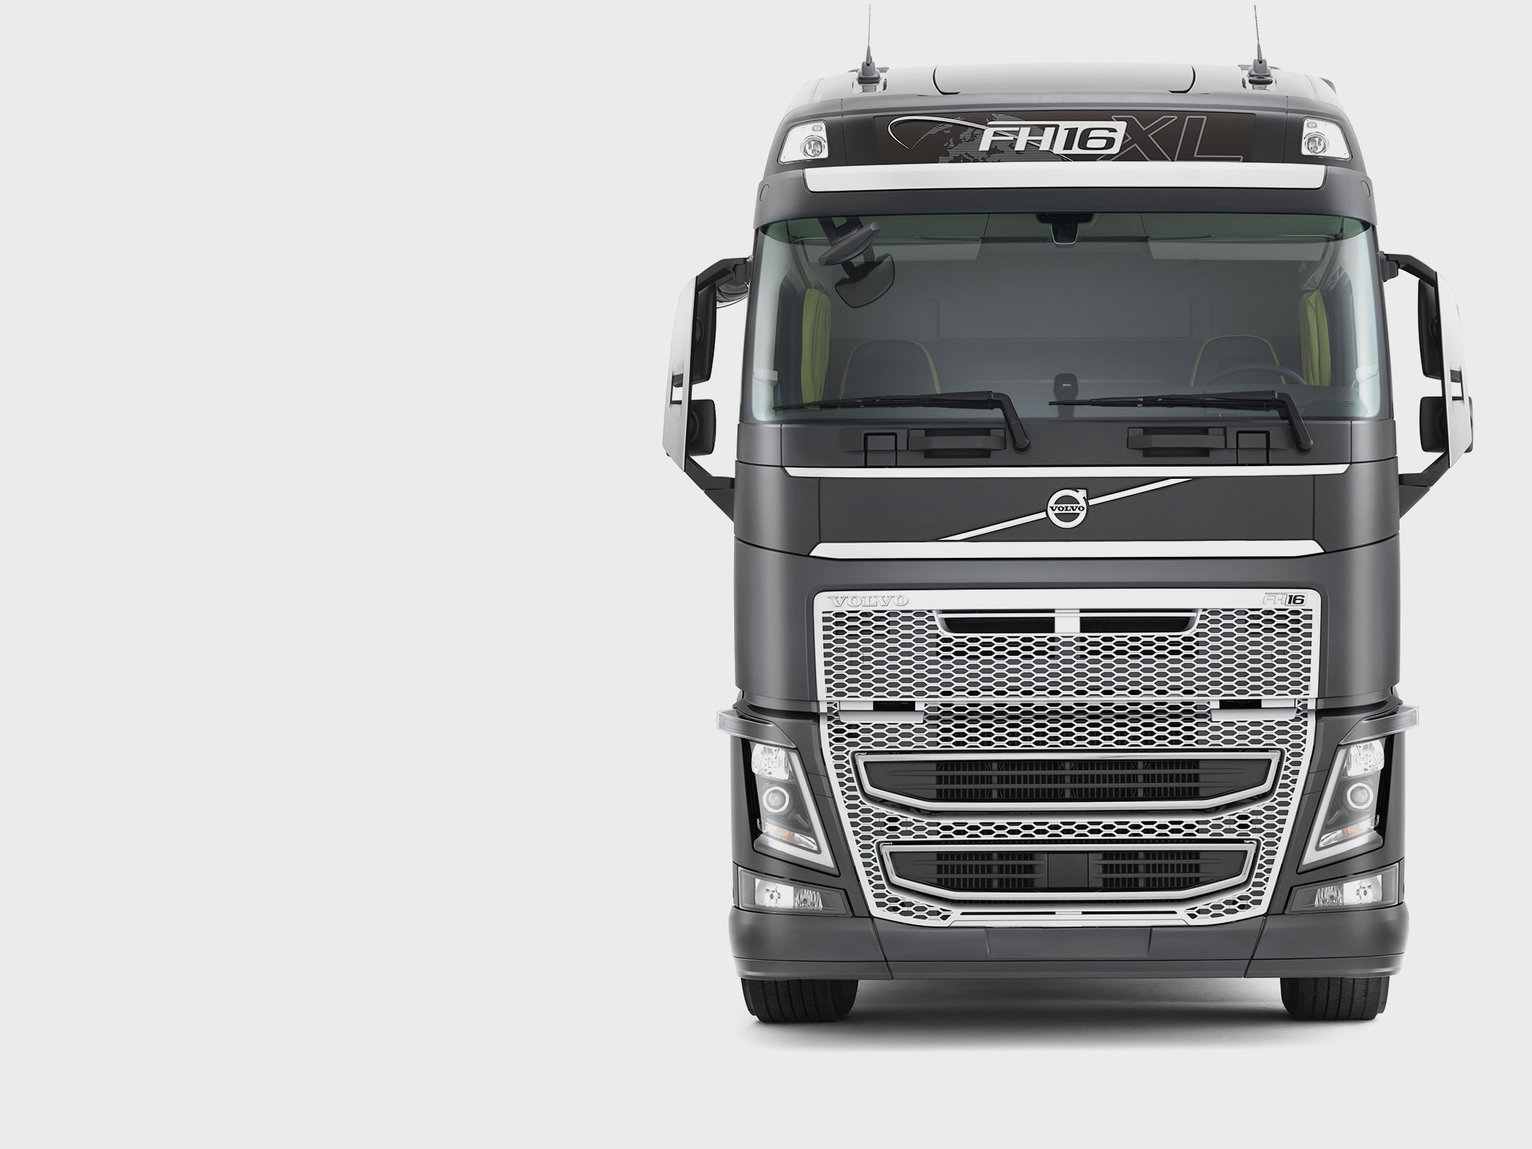 The new Volvo FH16 Peerless Design